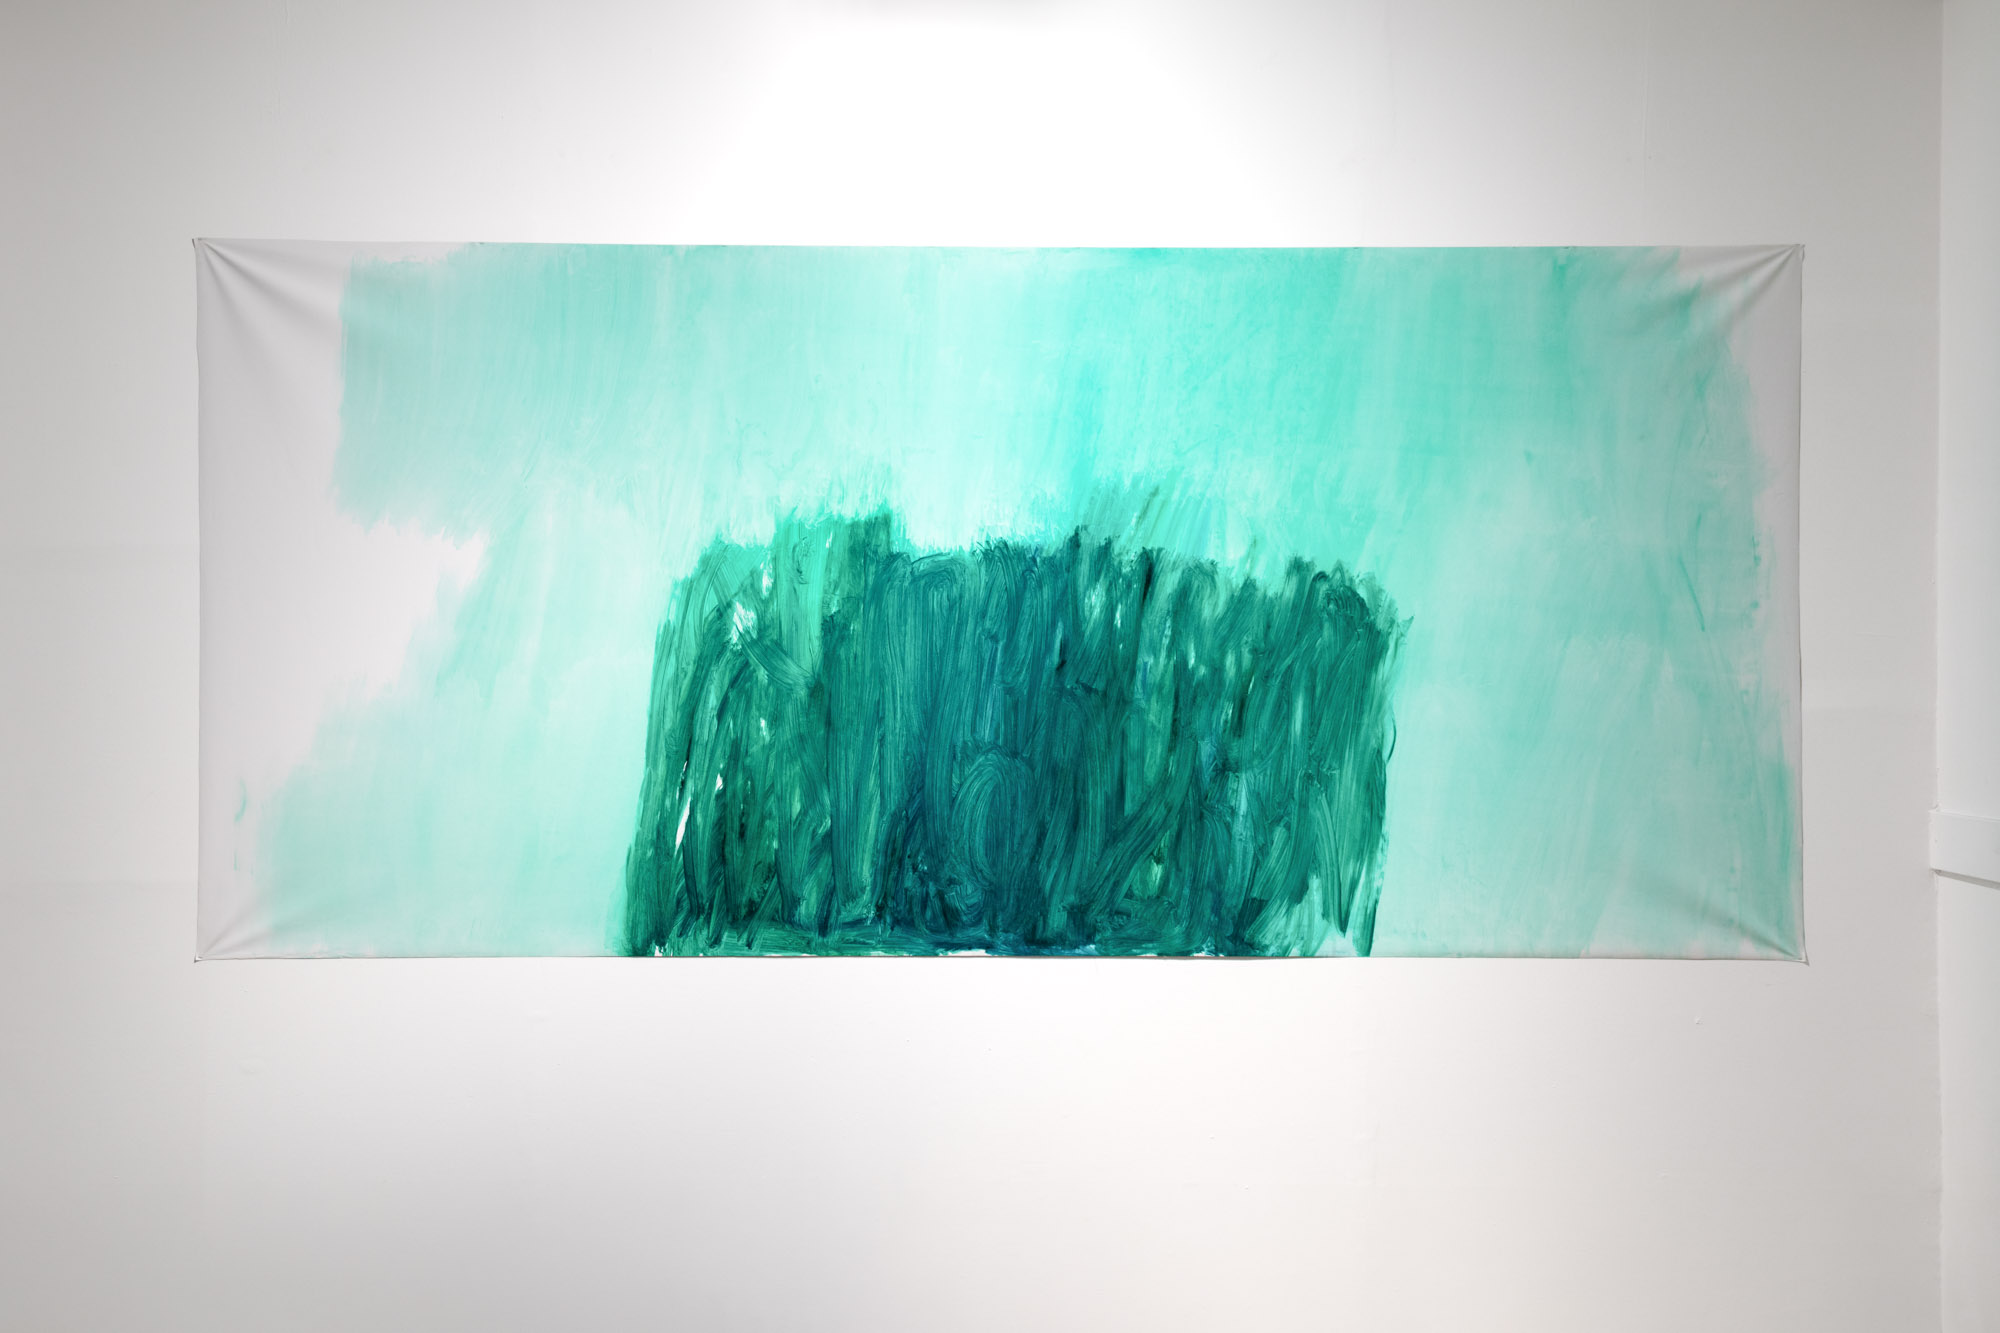 Green, oil on canvas, 160 x 350 cm, 2019 (Children in the Apple Tree installation in Most)